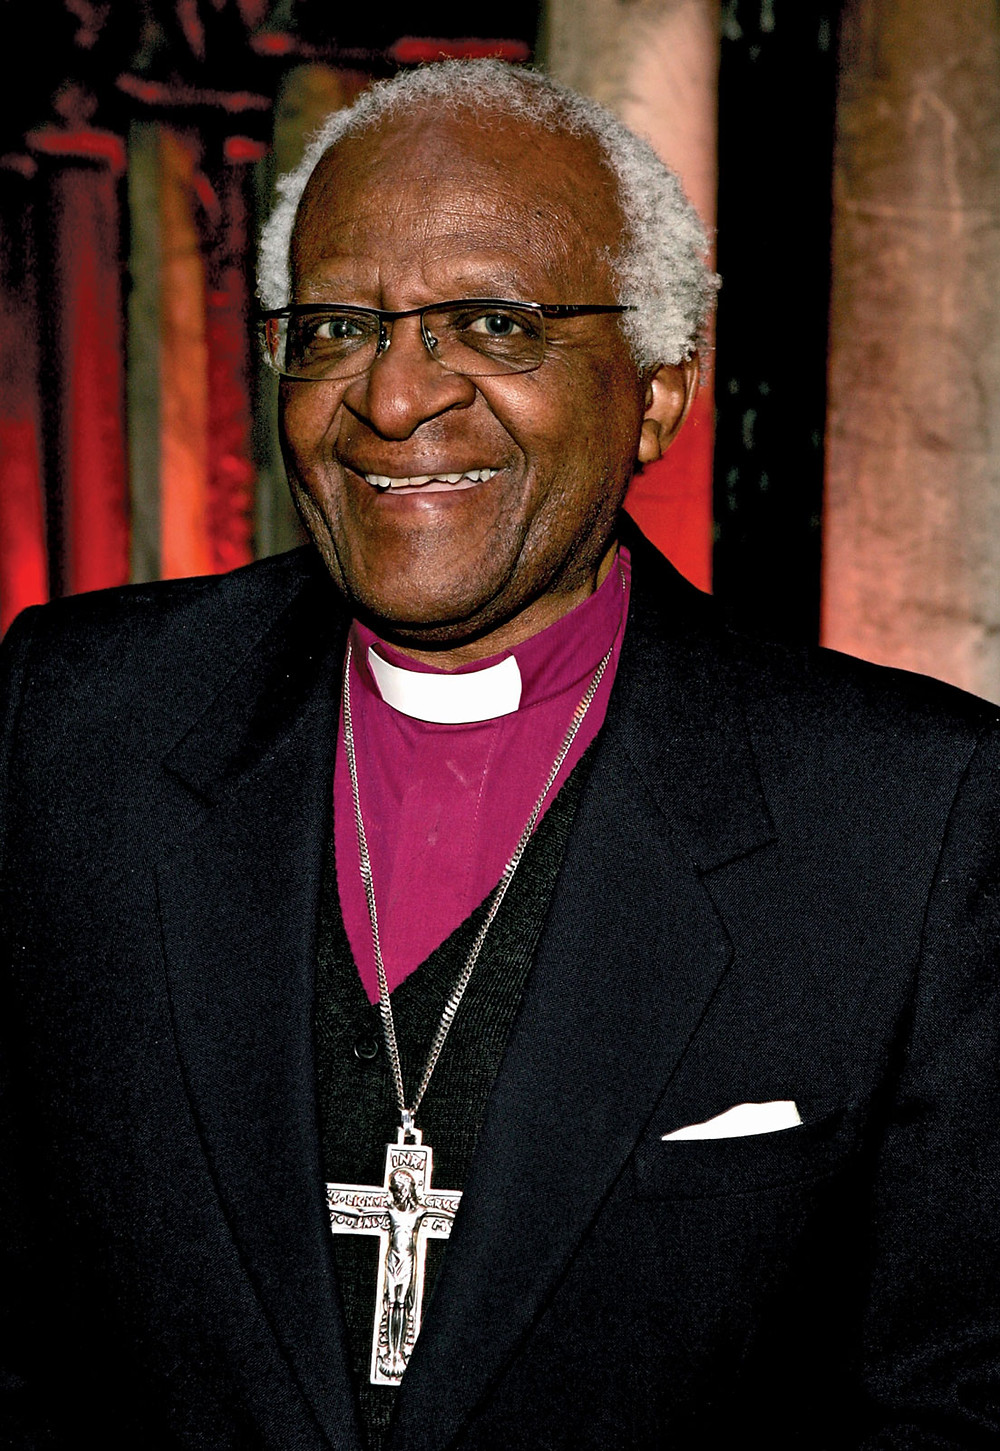 This is a portrait of Desmond Tutu, a Black man. He's pictured wearing a magenta shirt with a white Clerical collar, a black suit jacket, and a large silver crucifix around his neck. He also wears glasses and has short, silver hair.